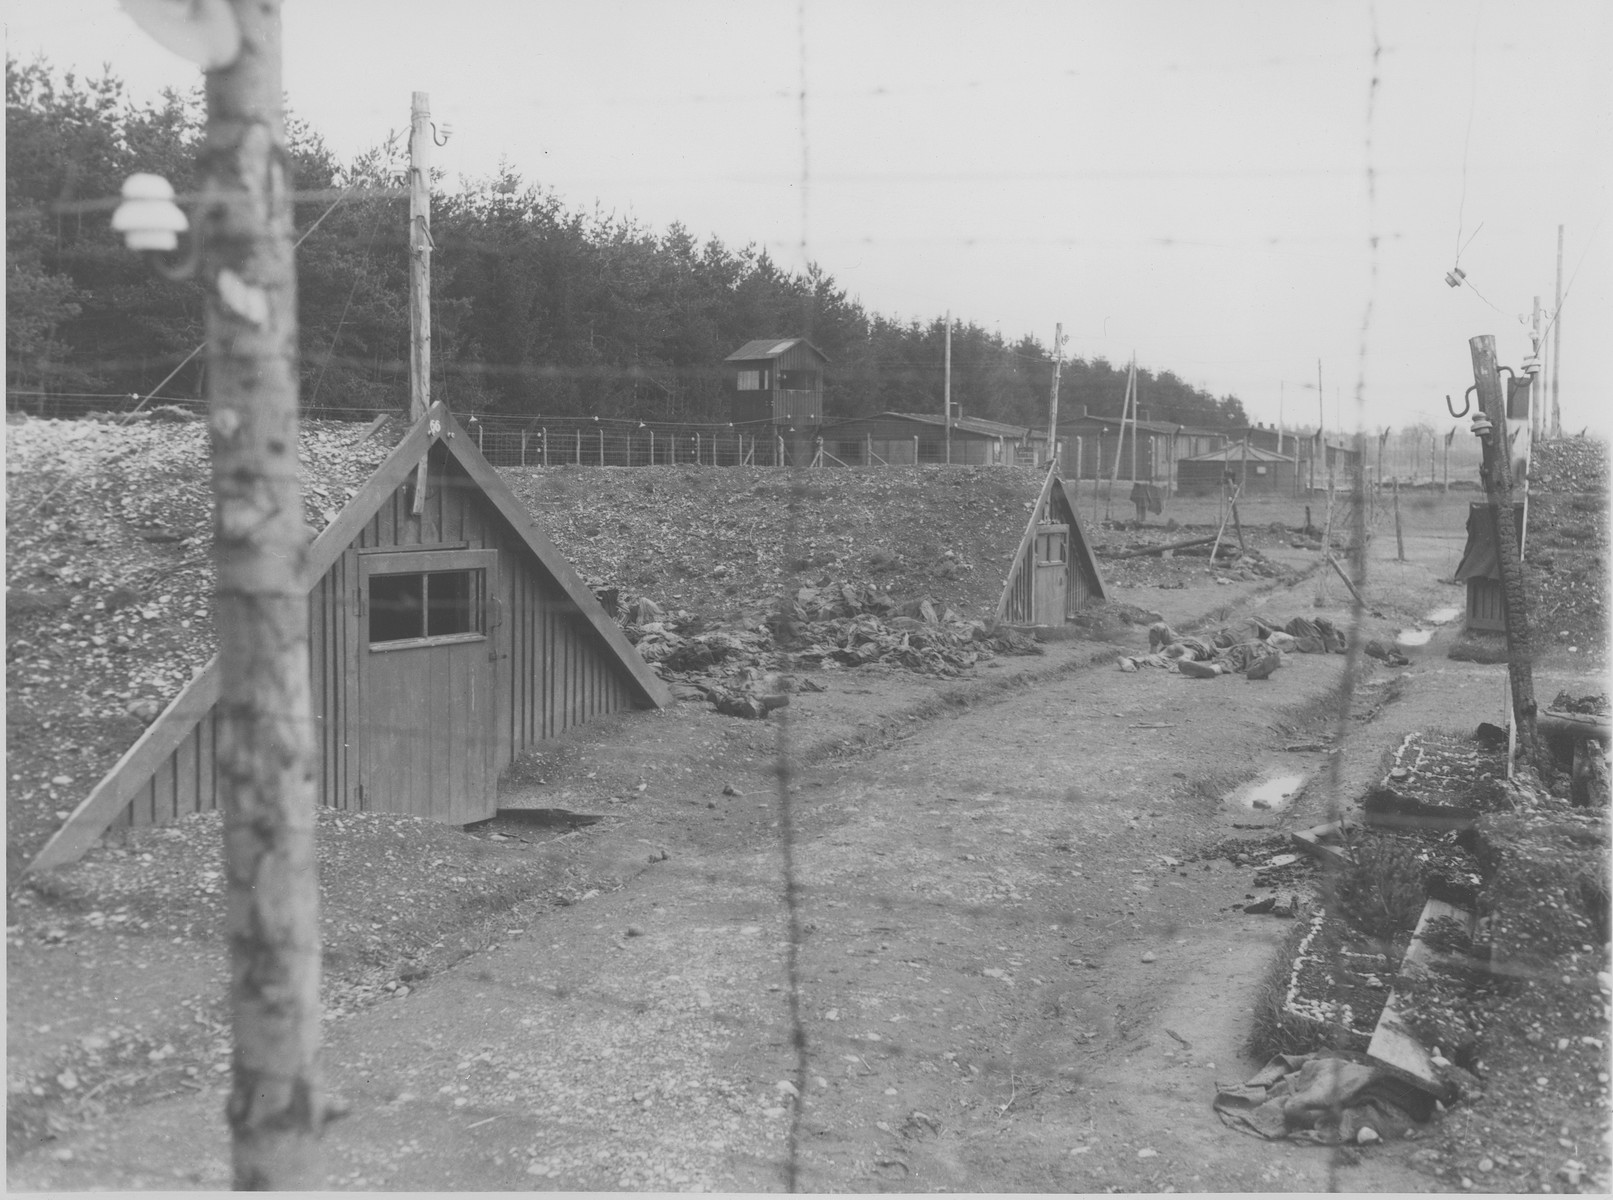 View of a row of barracks at the Kaufering IV concentration camp soon after the liberation.